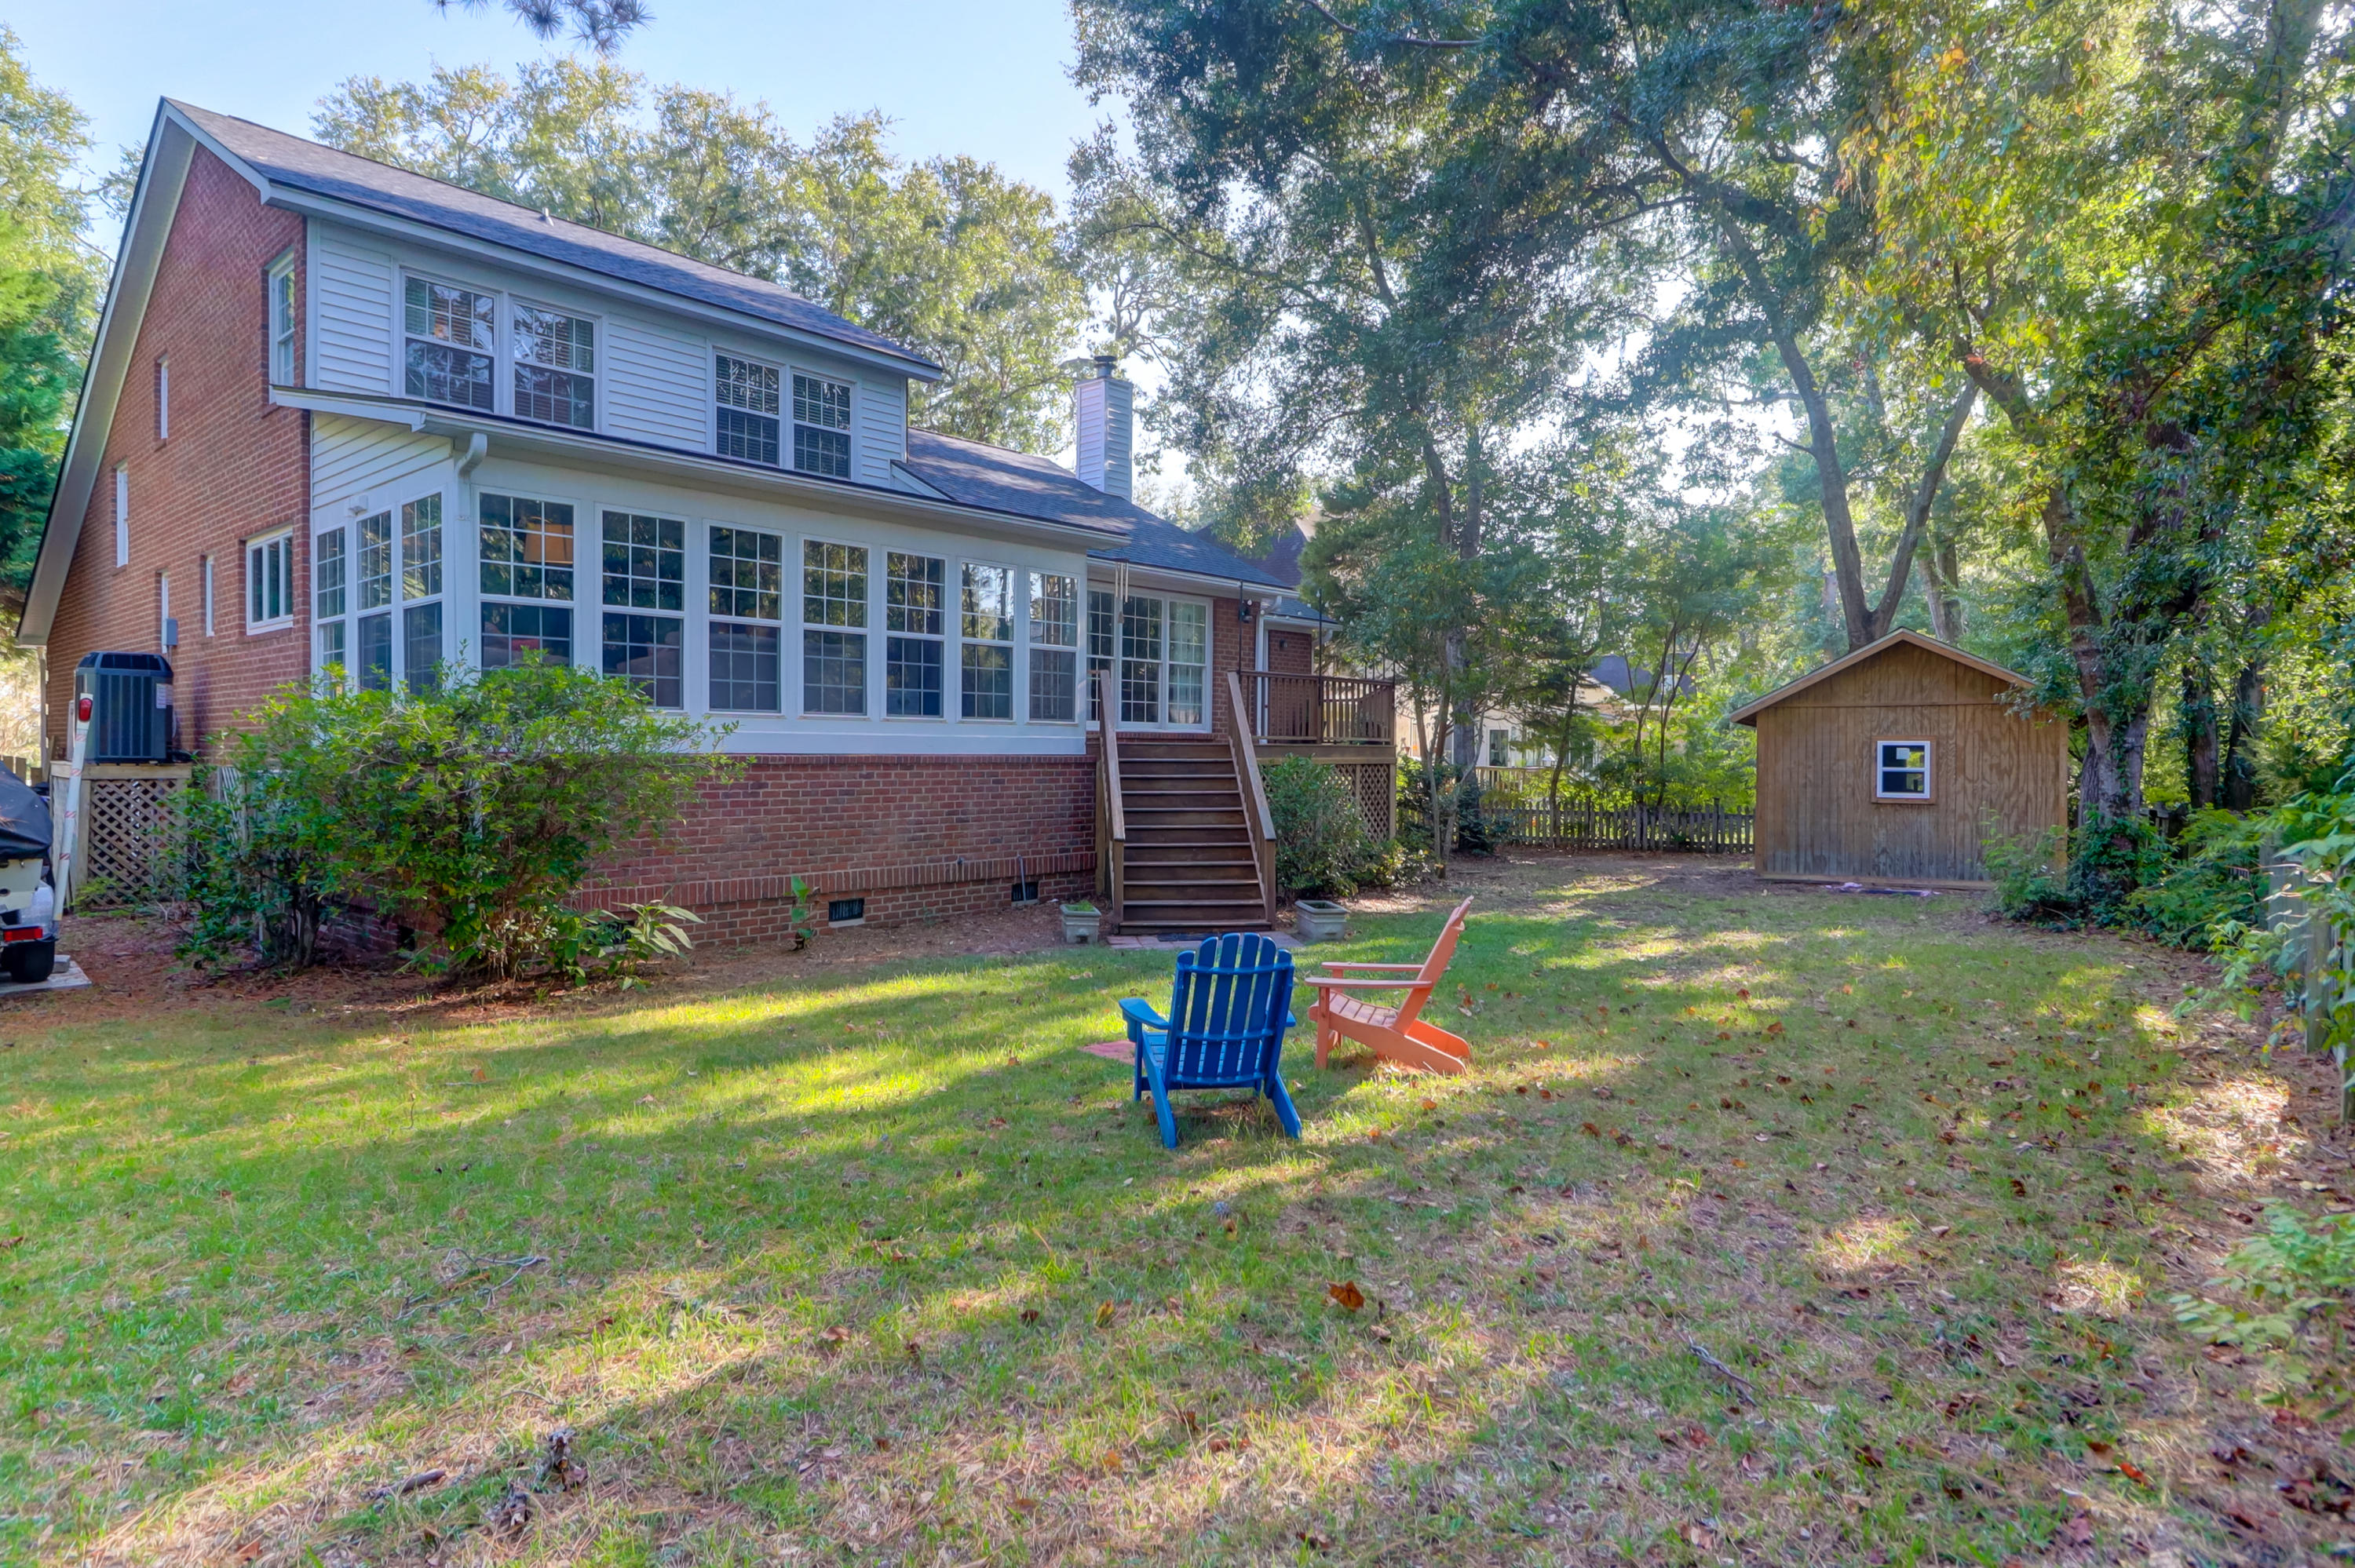 Parrot Creek Homes For Sale - 914 Parrot Creek, Charleston, SC - 0